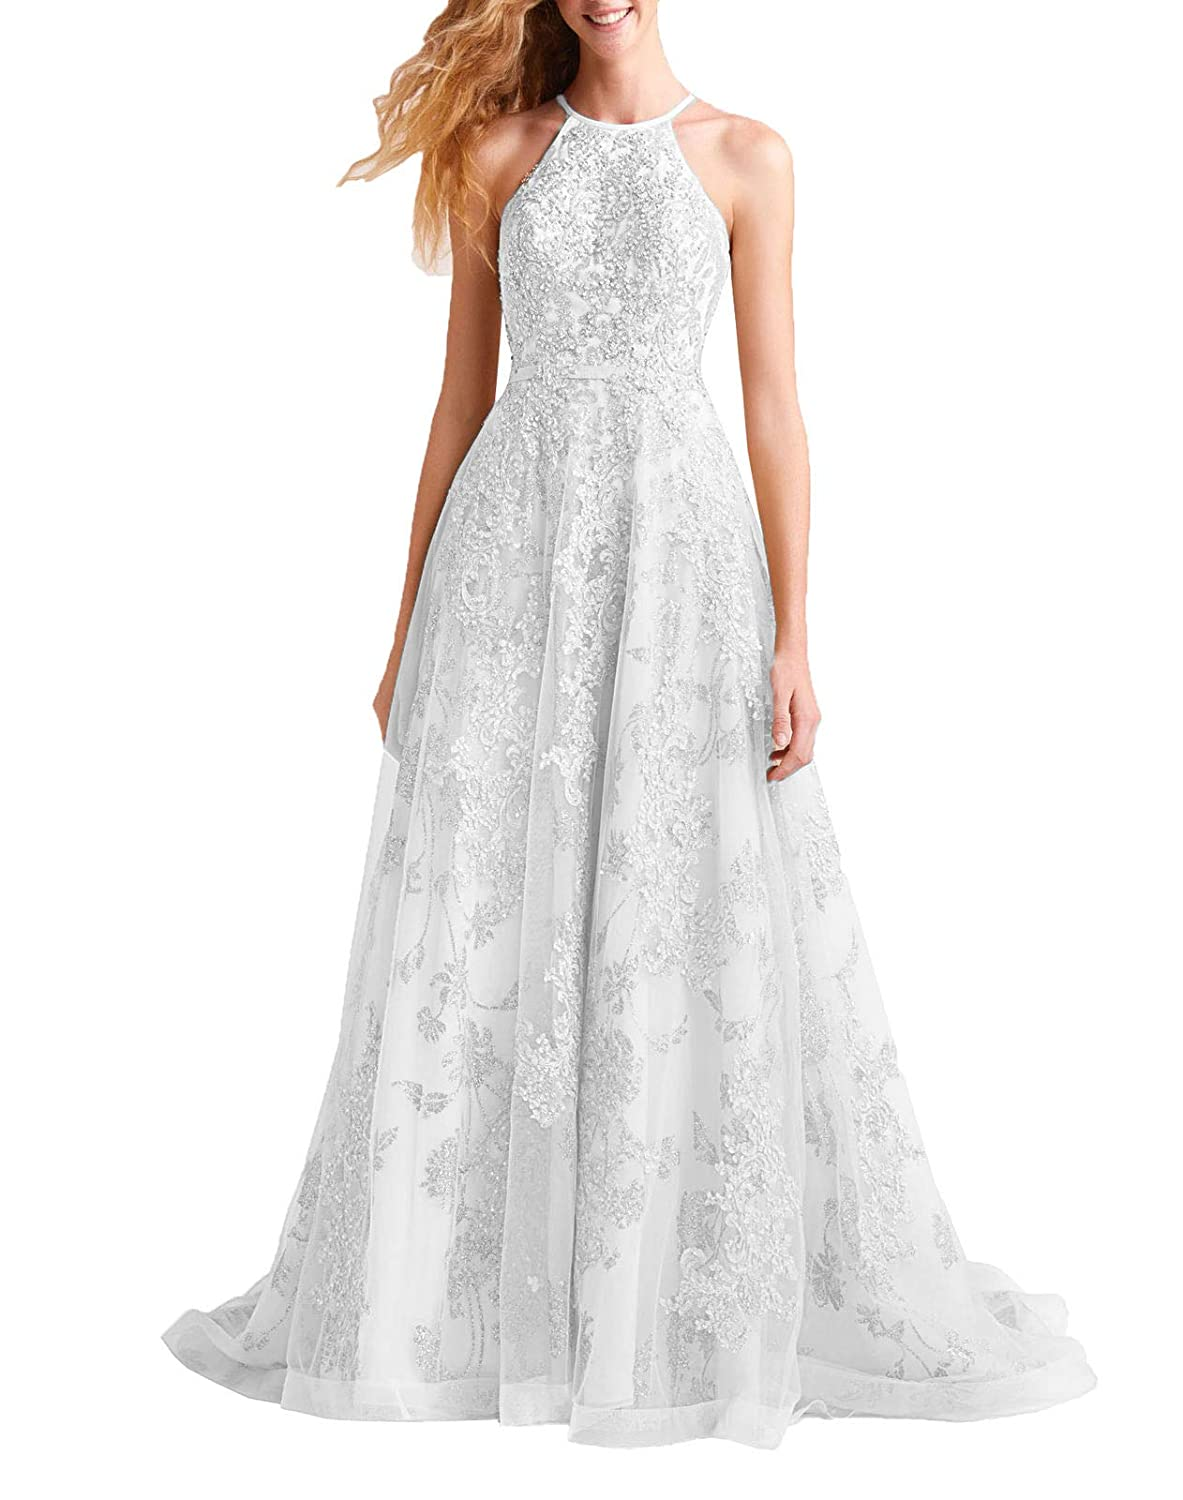 White Wanshaqin Women's Aline Floral Beaded Prom Formal Dress Evening Cocktail Dress Bridesmaid Gown for Wedding Party